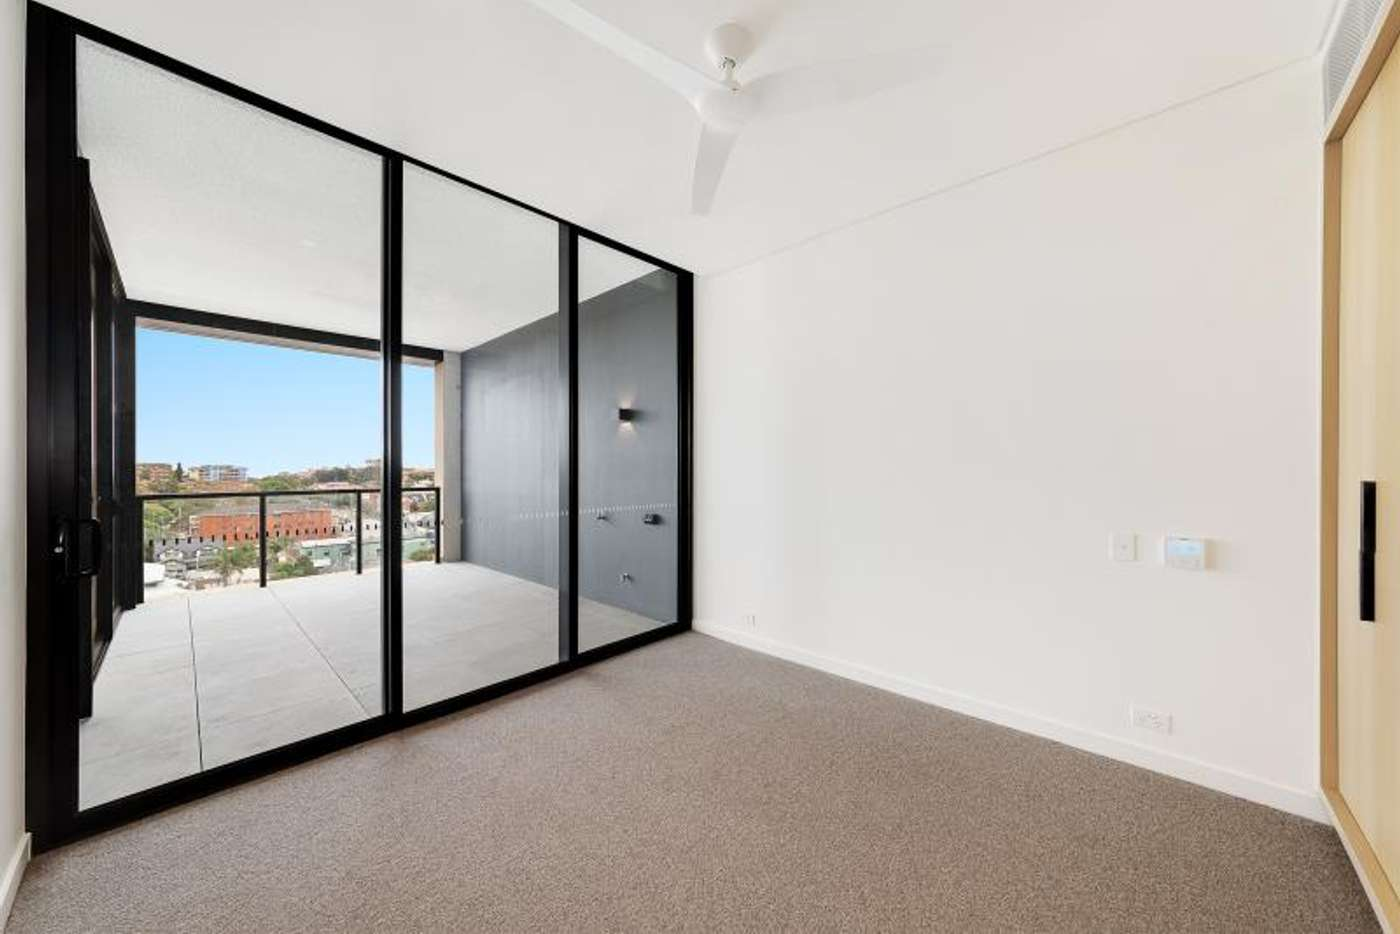 Seventh view of Homely apartment listing, 608/3 Young Street, Randwick NSW 2031